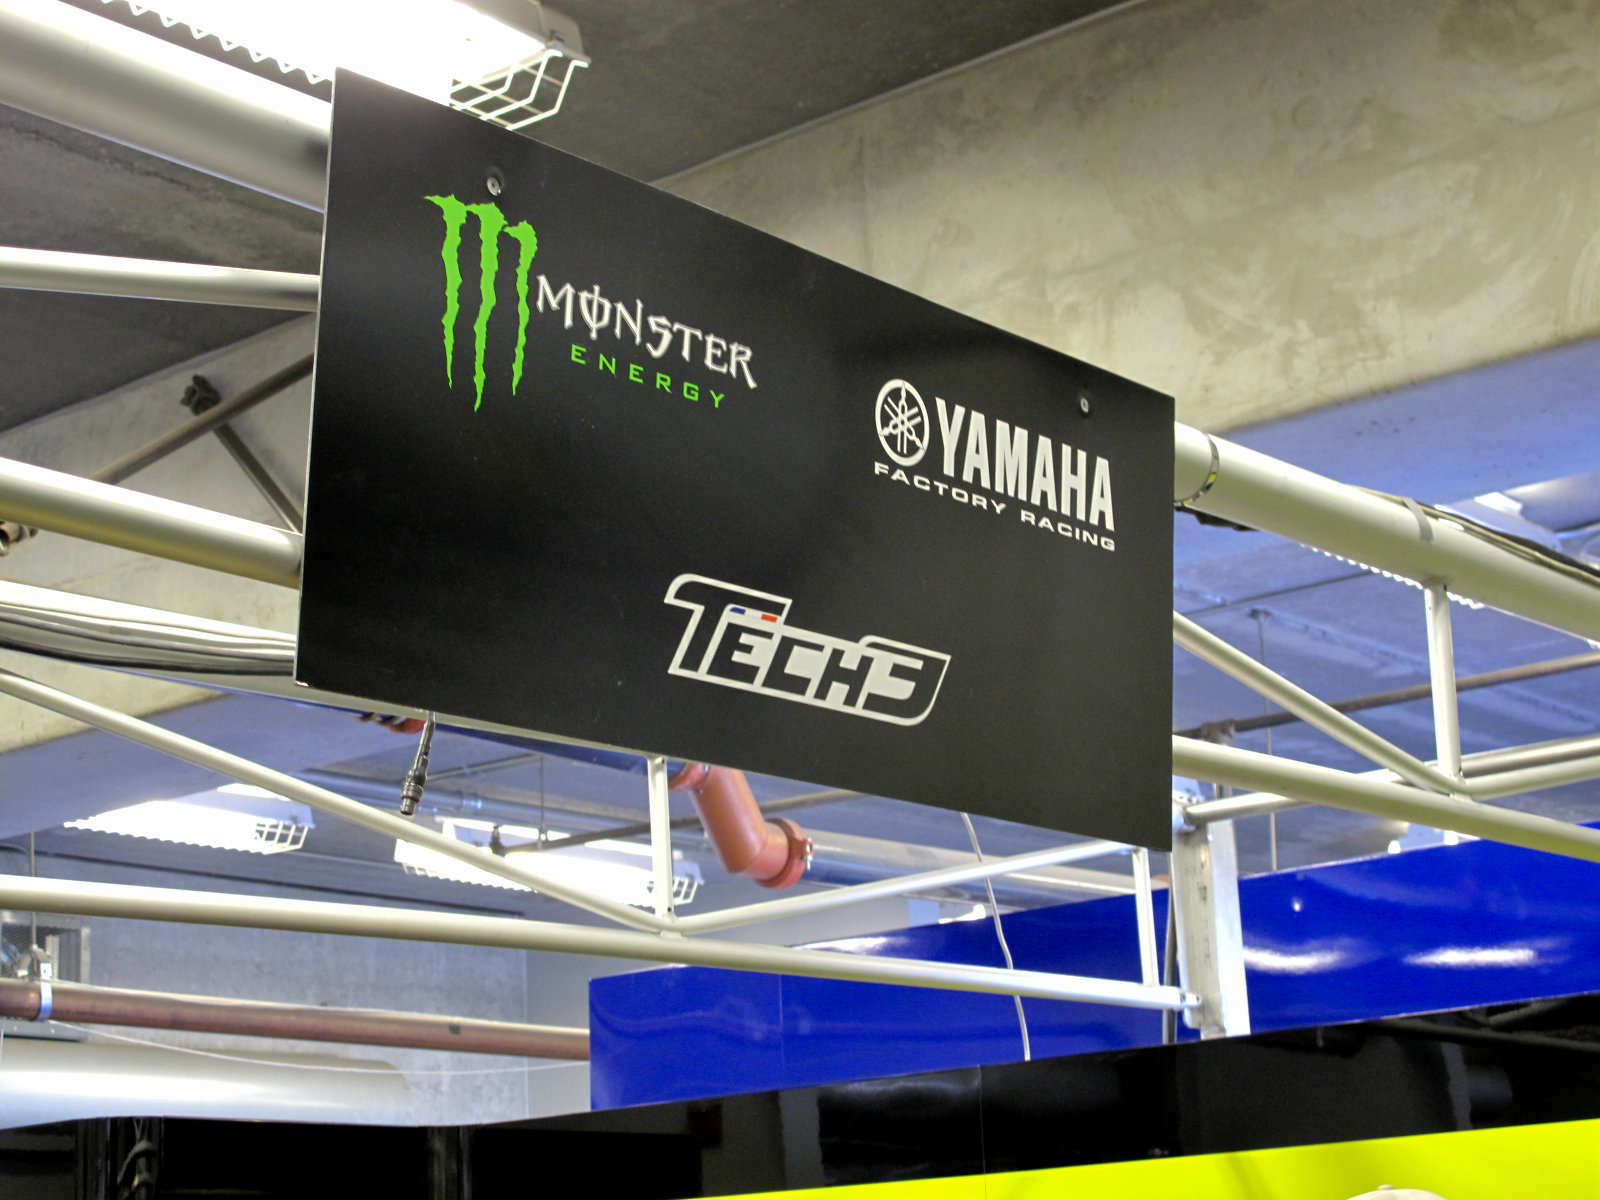 Yamaha pit stop at mazda raceways picture 309935 for Yamaha parts pit stop